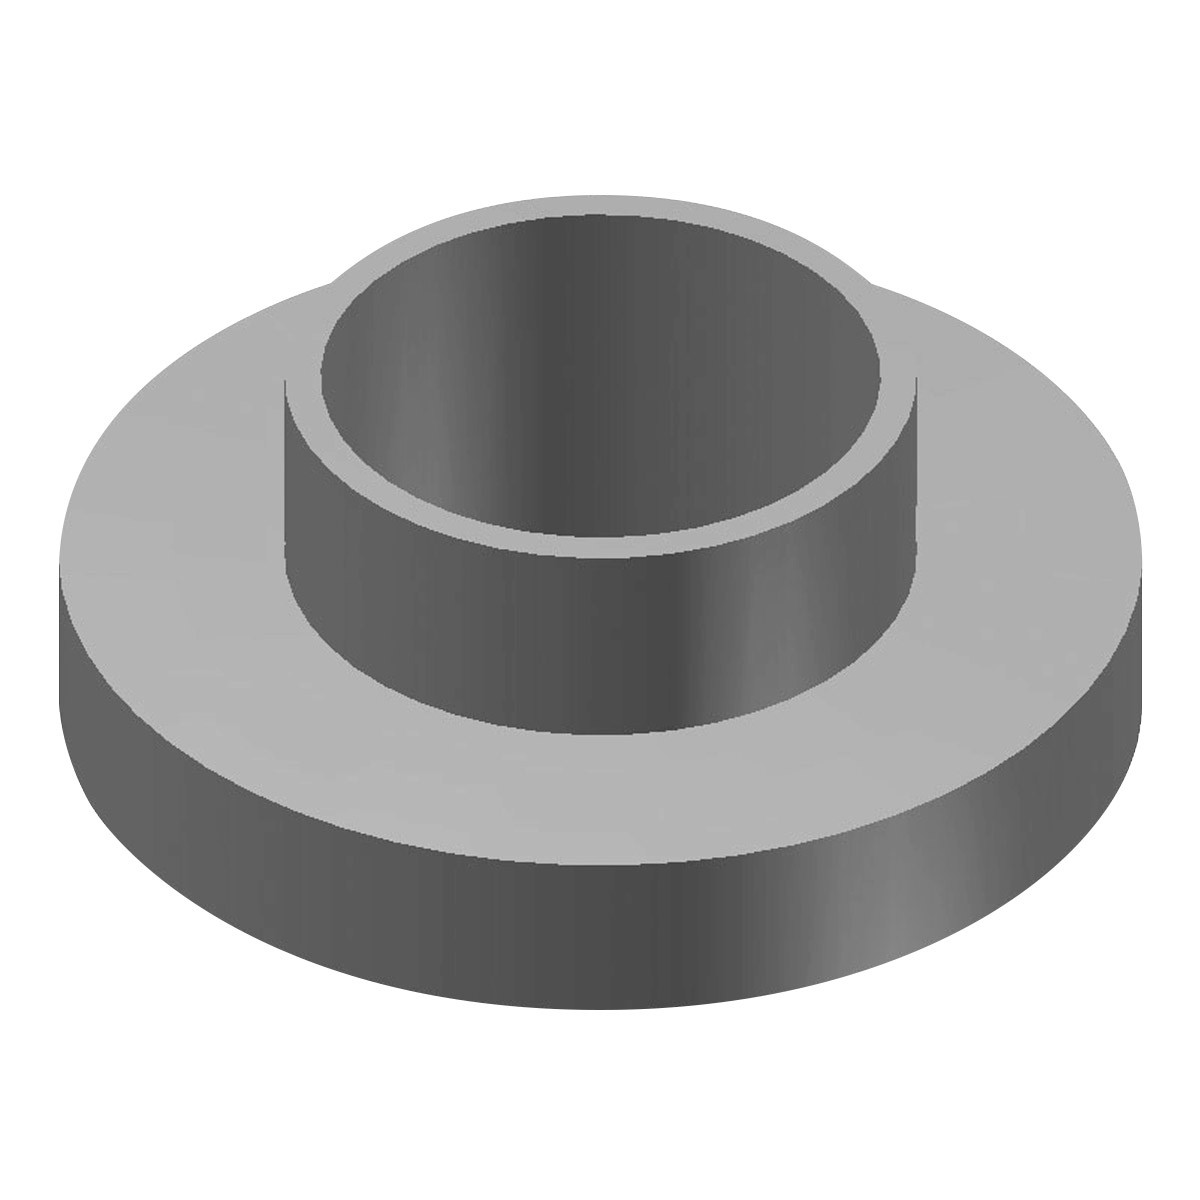 Insulation Spacer Transistor Components TO-220 / TOP-3 (Unit)